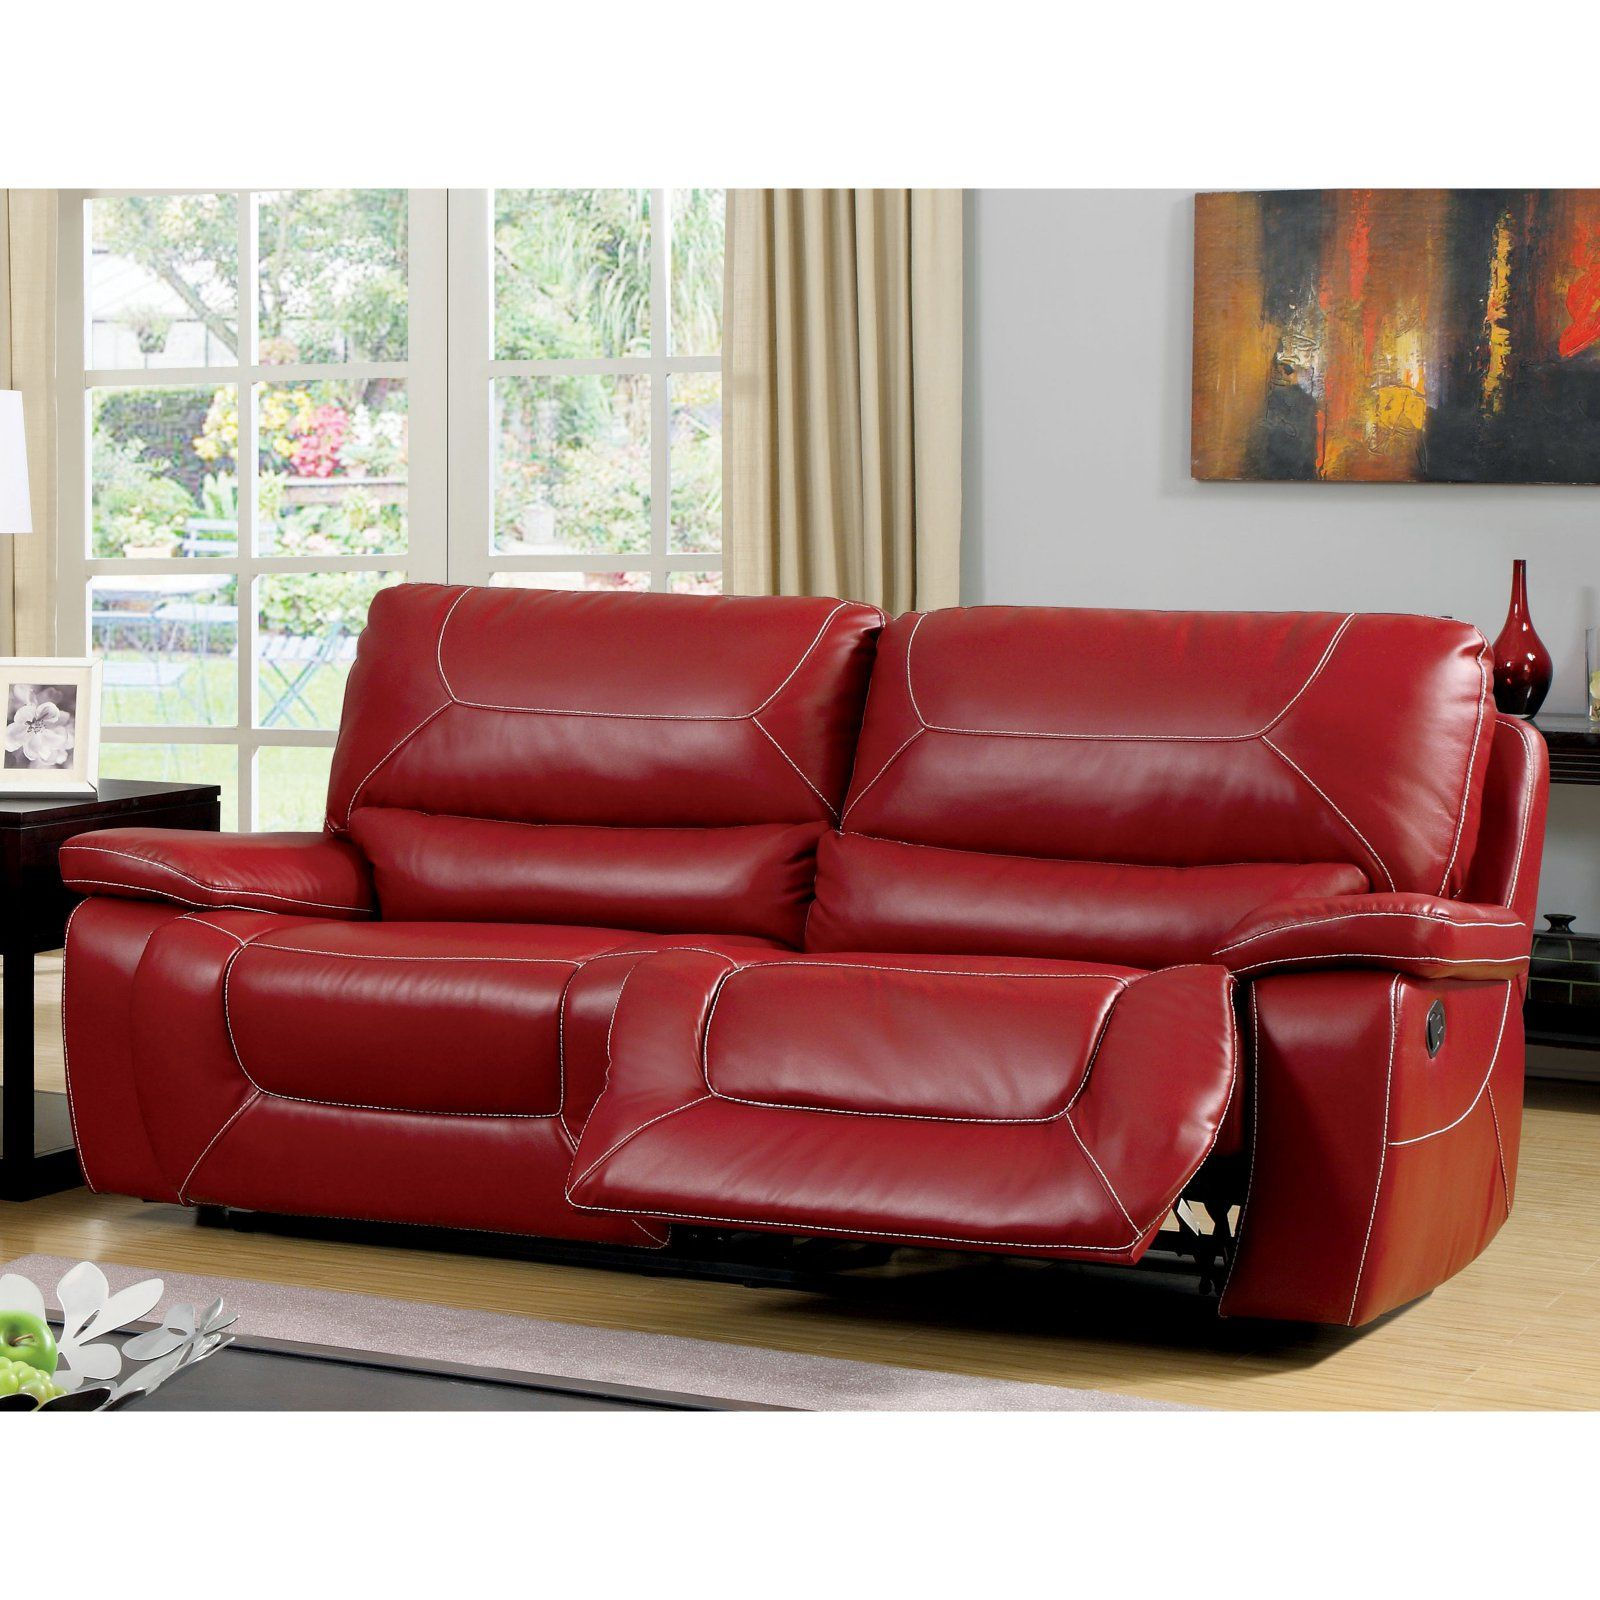 Astounding Furniture Of America Knightly Recliner Sofa Red In 2019 Ibusinesslaw Wood Chair Design Ideas Ibusinesslaworg